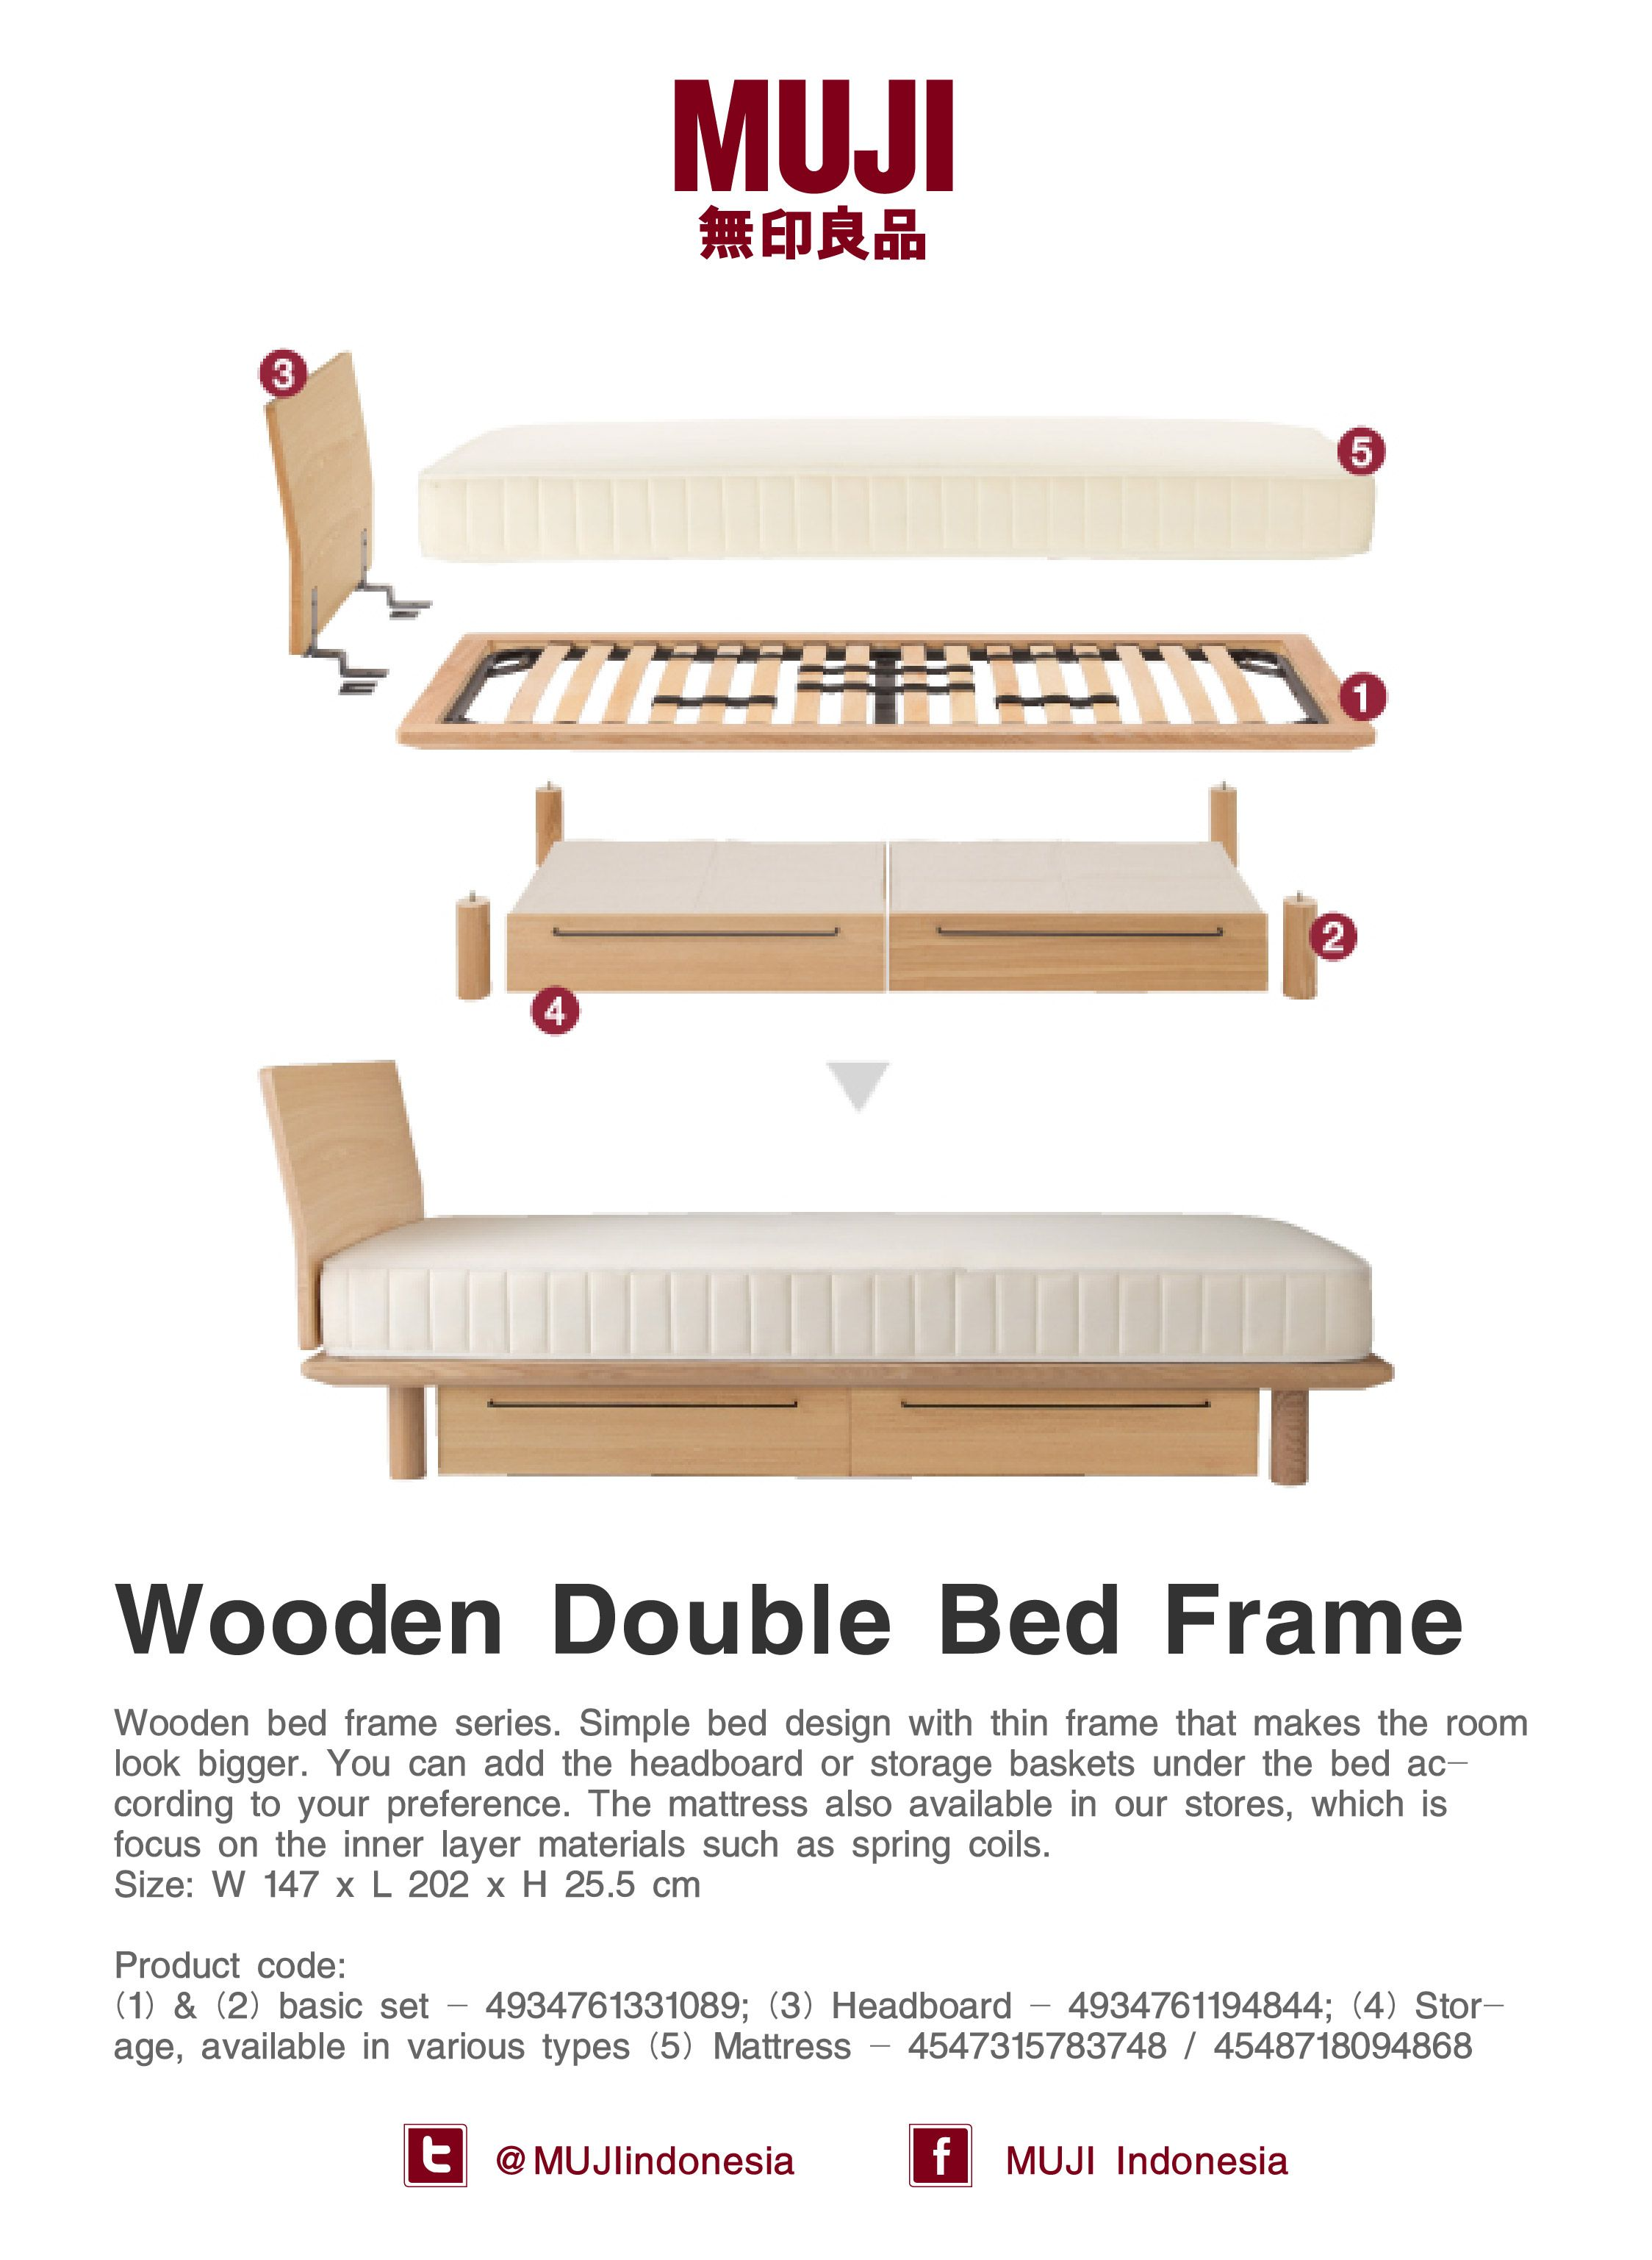 Wooden Double Bed Frame Simple Bed Designs Wooden Double Bed